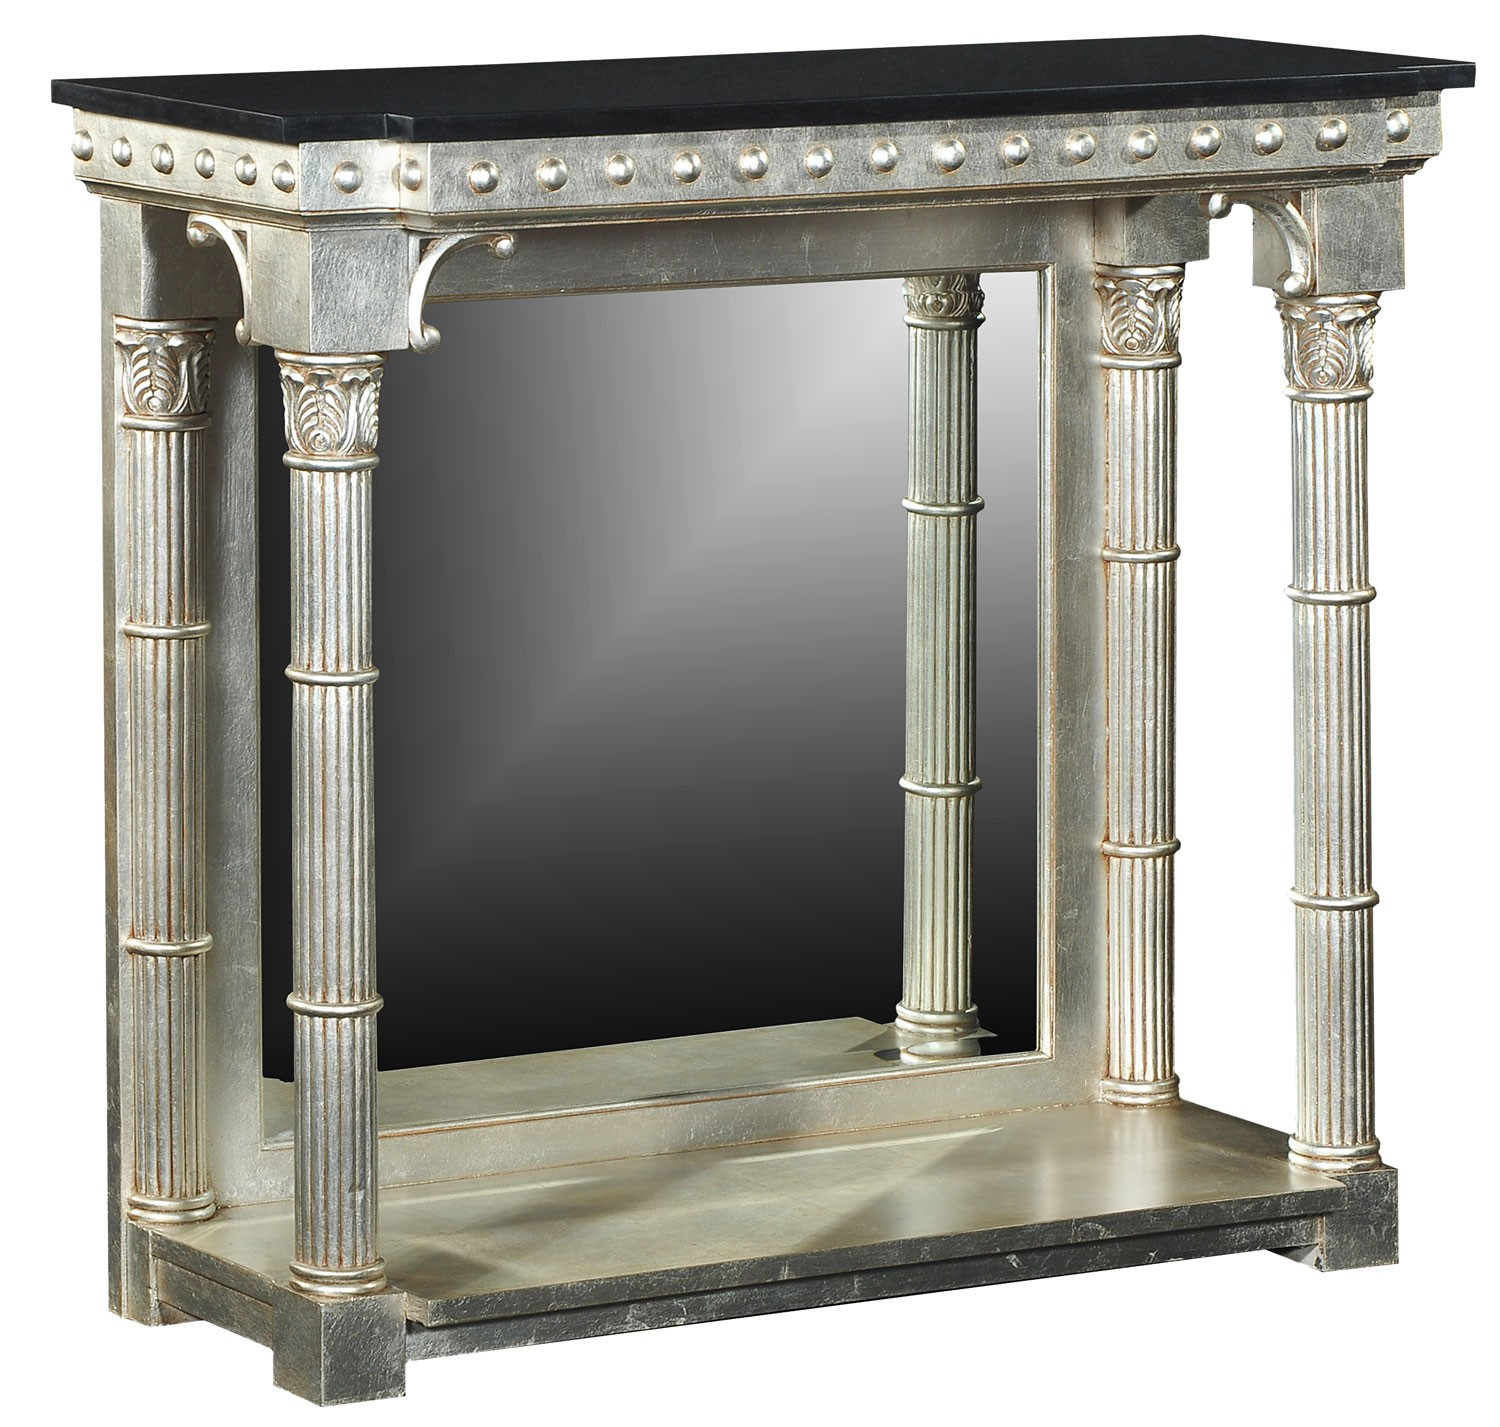 Silver console table with black granite top console hall tables silver console table with black granite top geotapseo Image collections